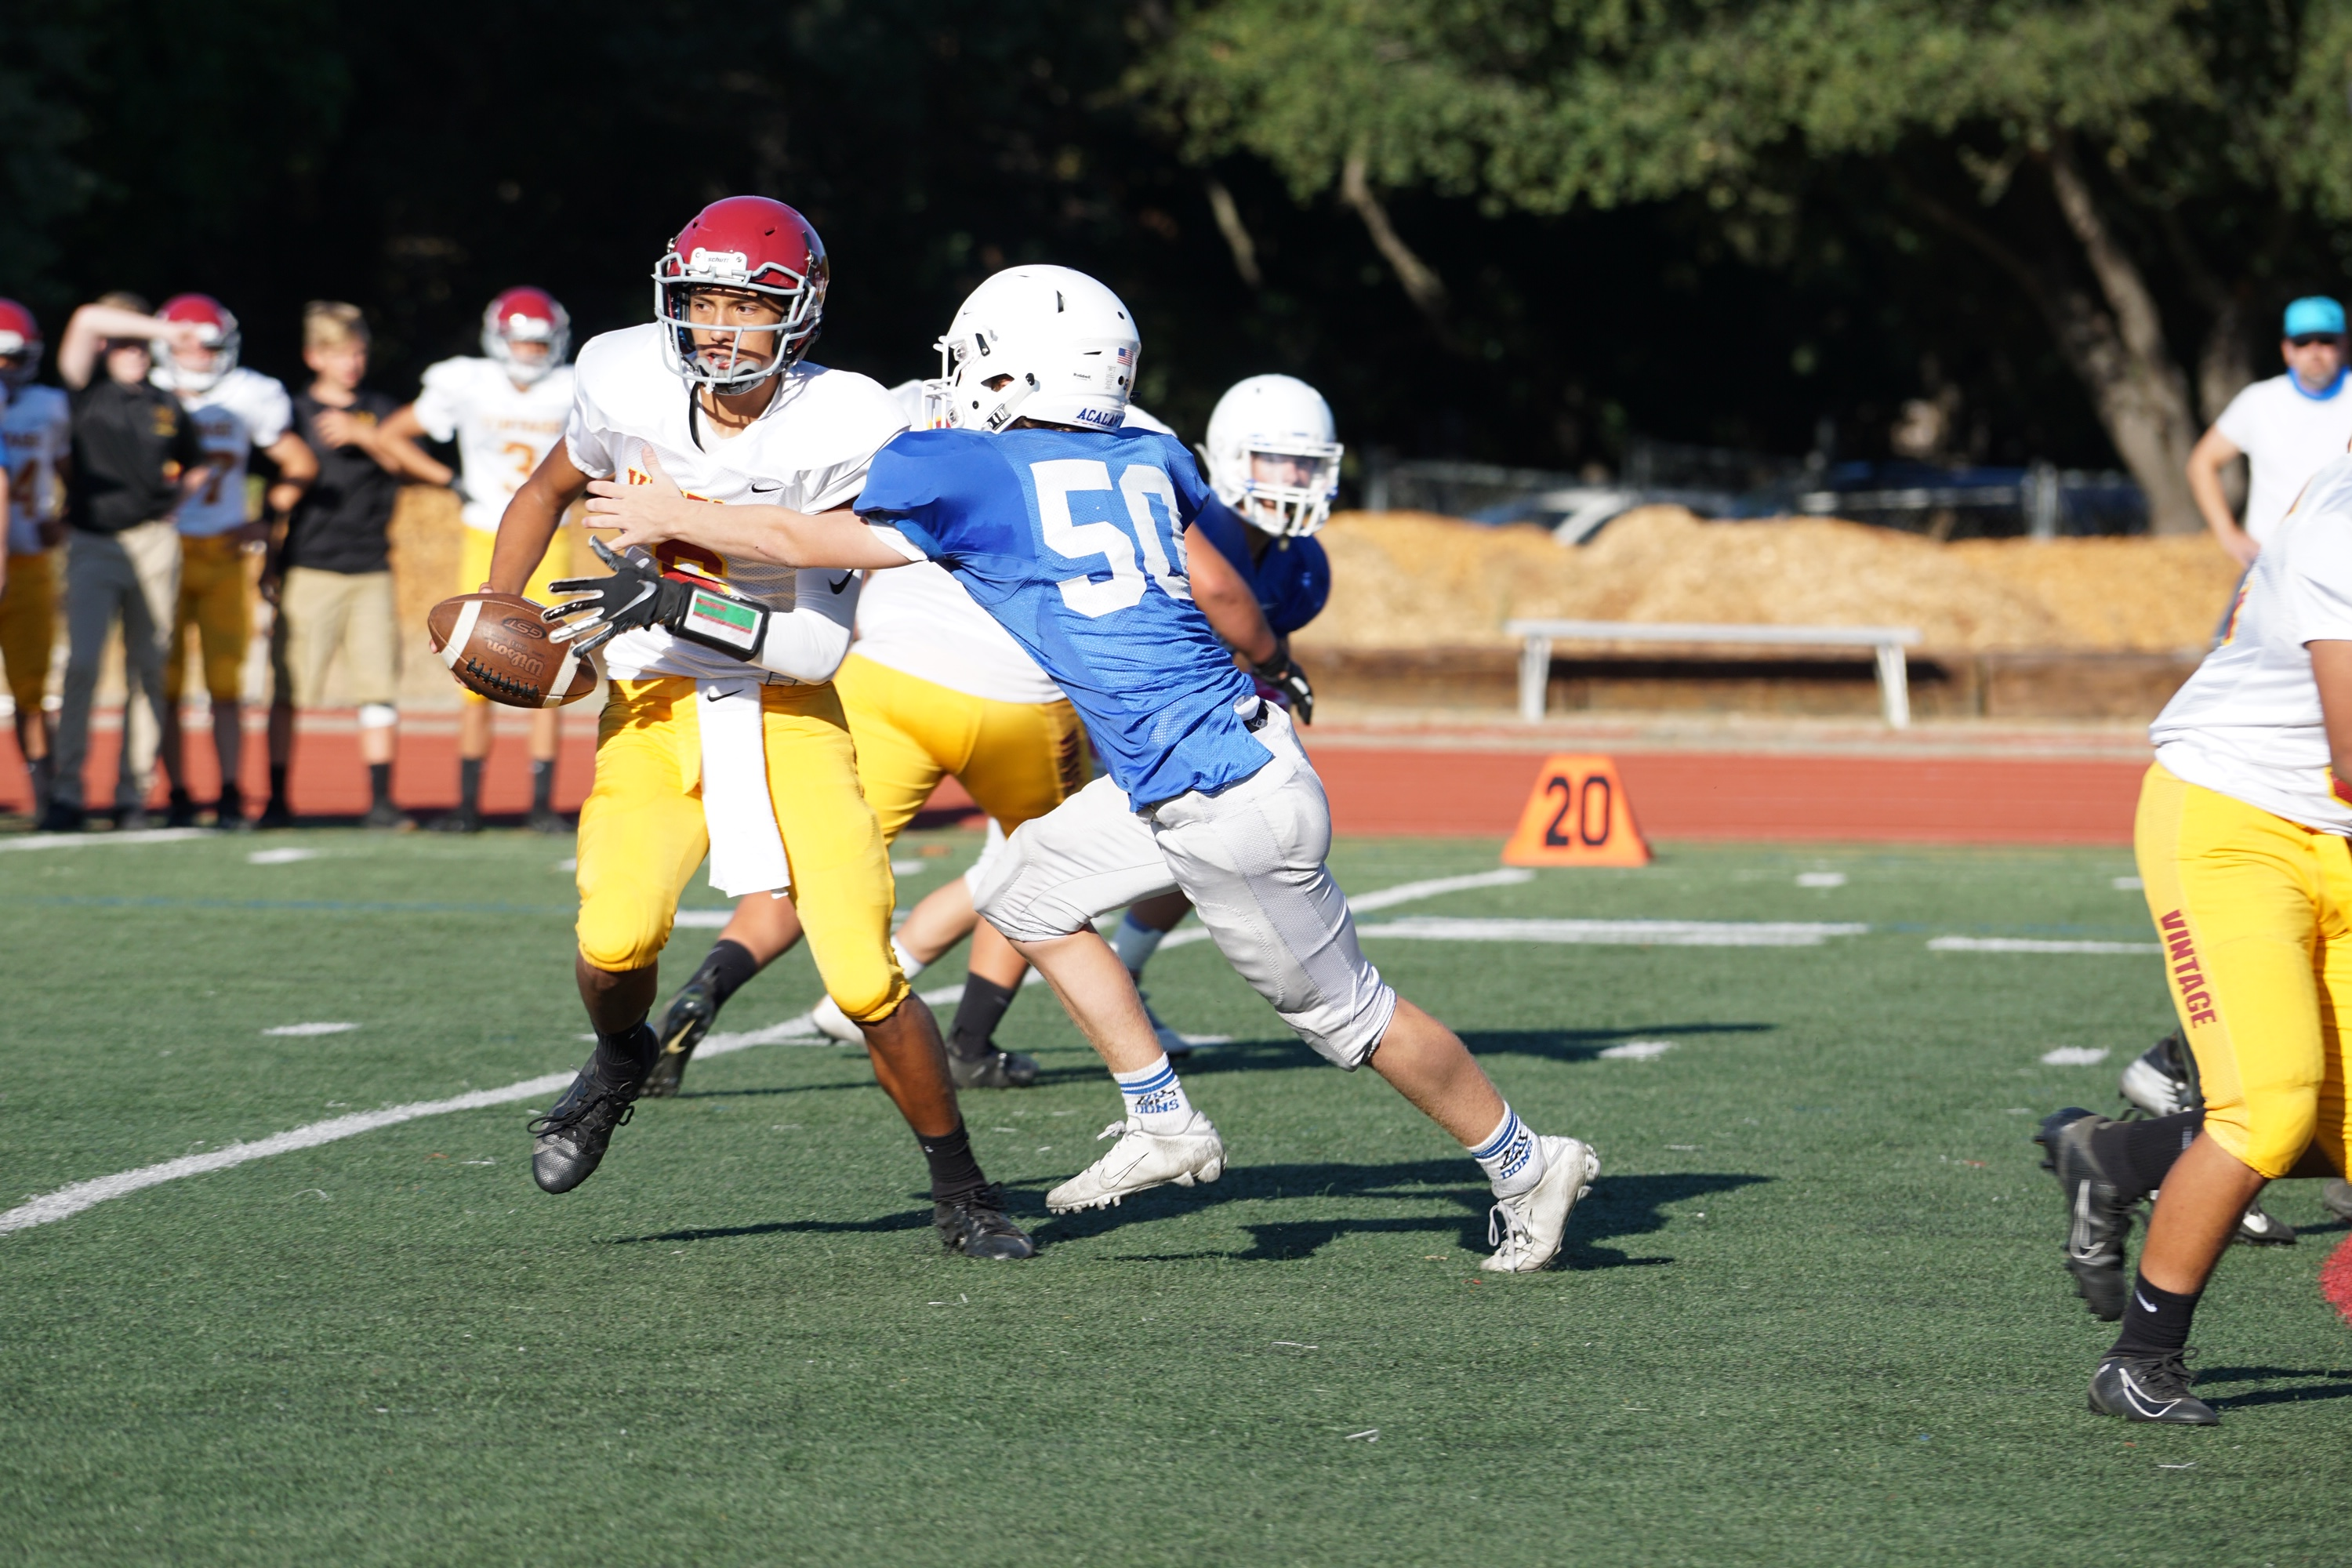 Freshmen Dons Football Fight to the End